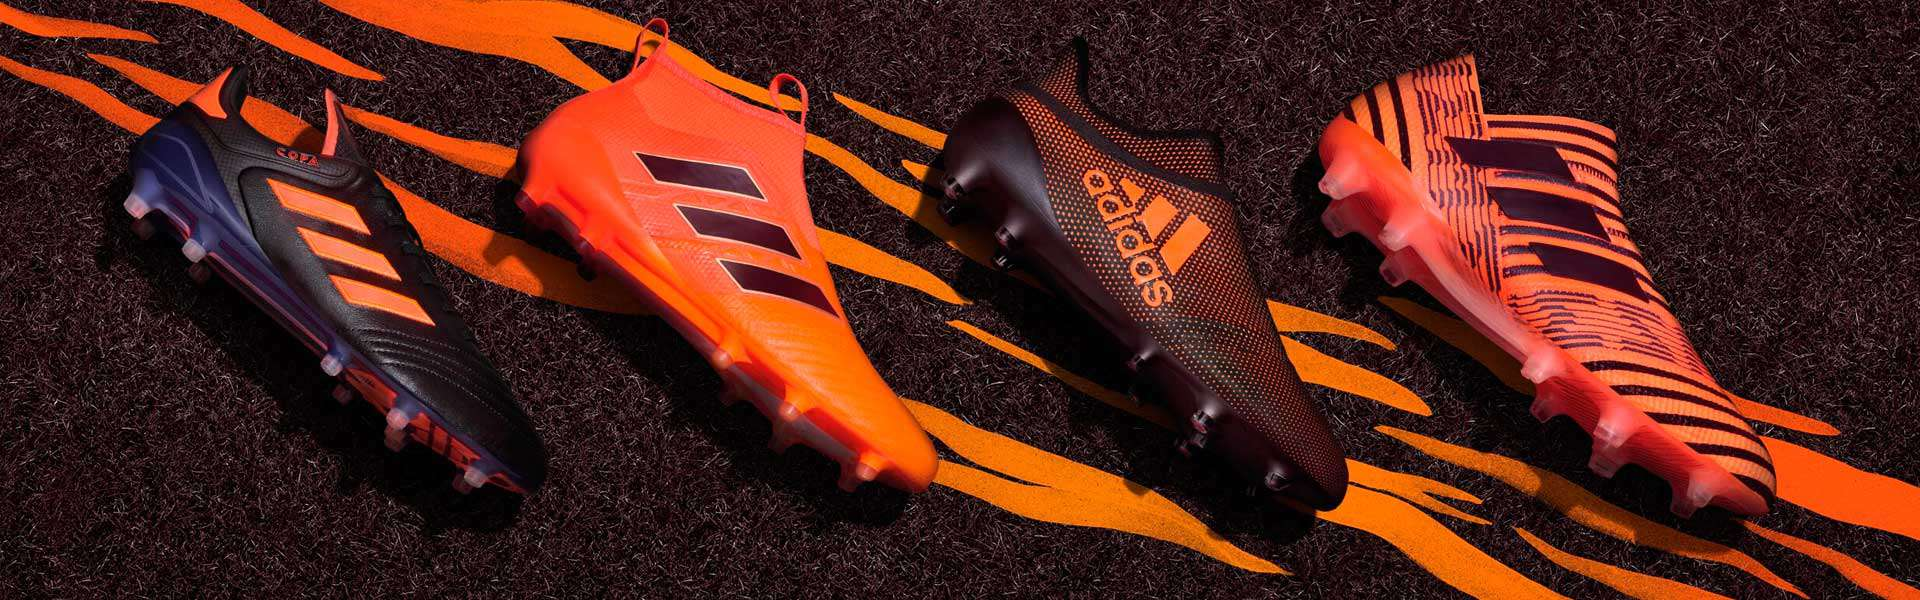 Best Soccer Cleats For 2018 – Buying Guide For Shoppers